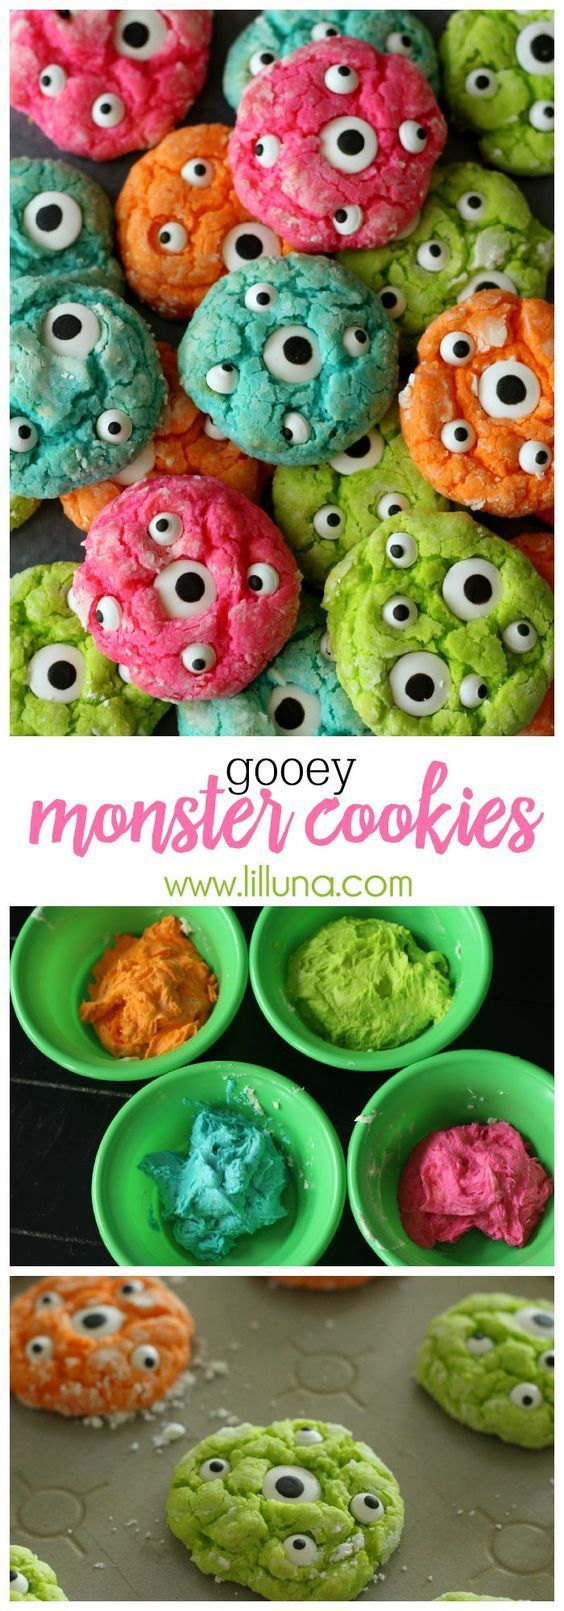 Halloween Party Treats Appetizers and Desserts Recipes - Gooey Delicious…